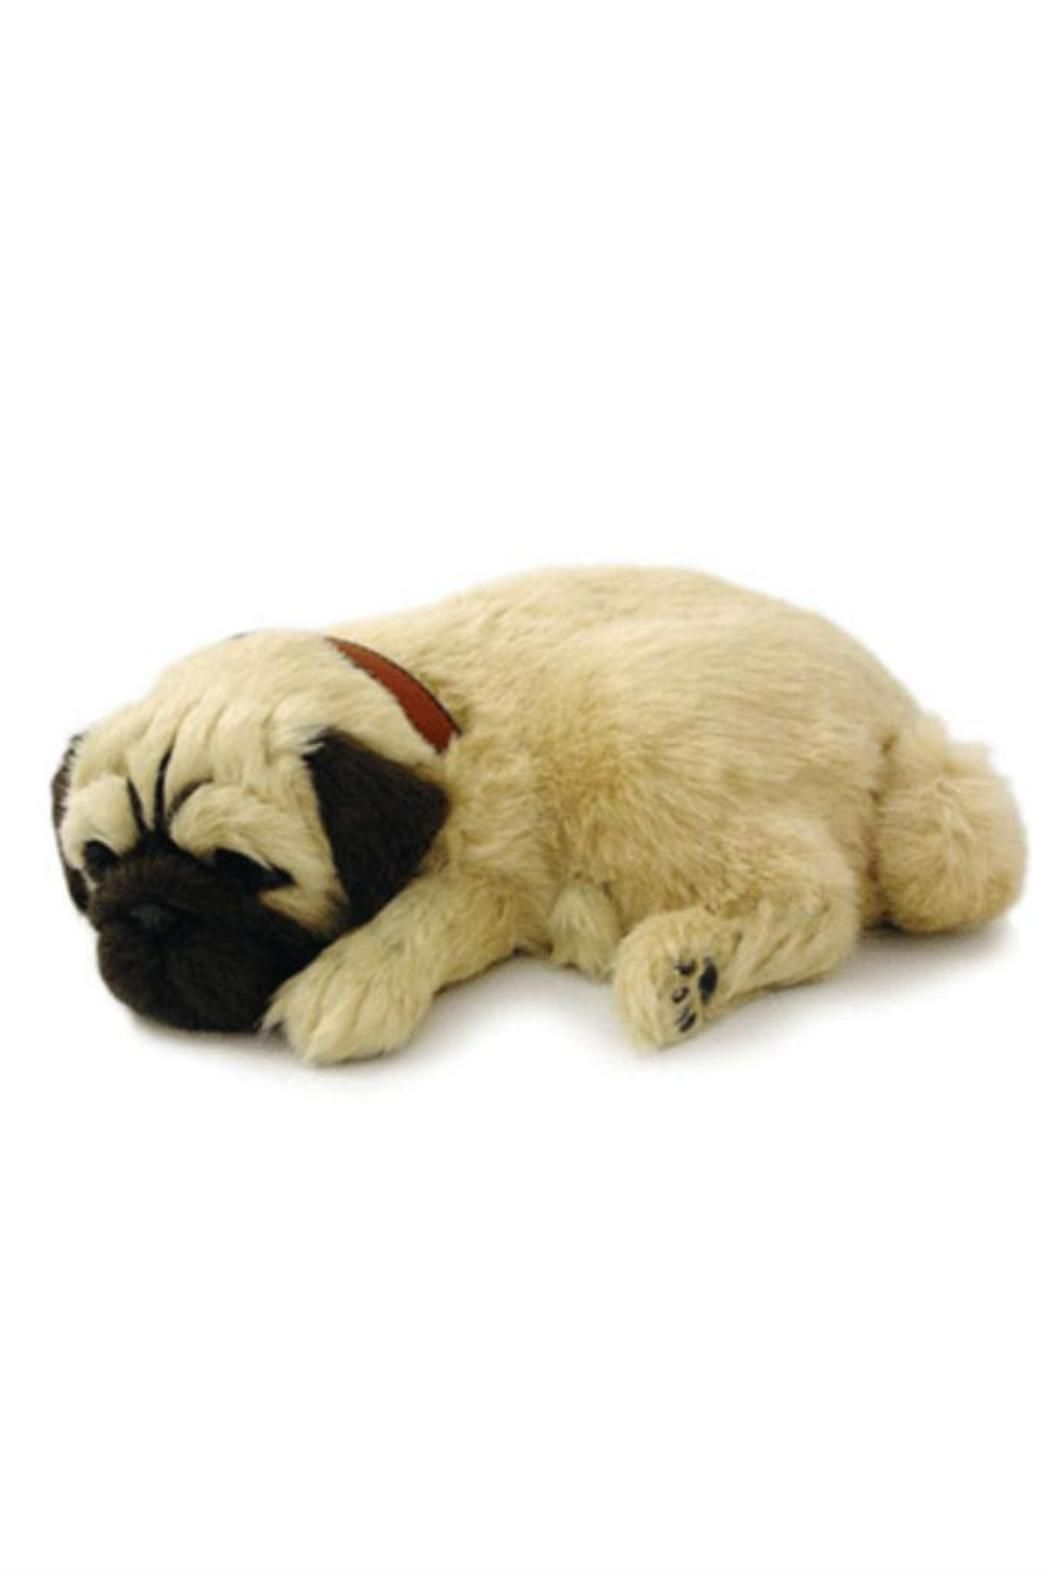 Perfect Petzzz Sleeping Pug Toy Sleeping Puppies Pet Pug Pugs